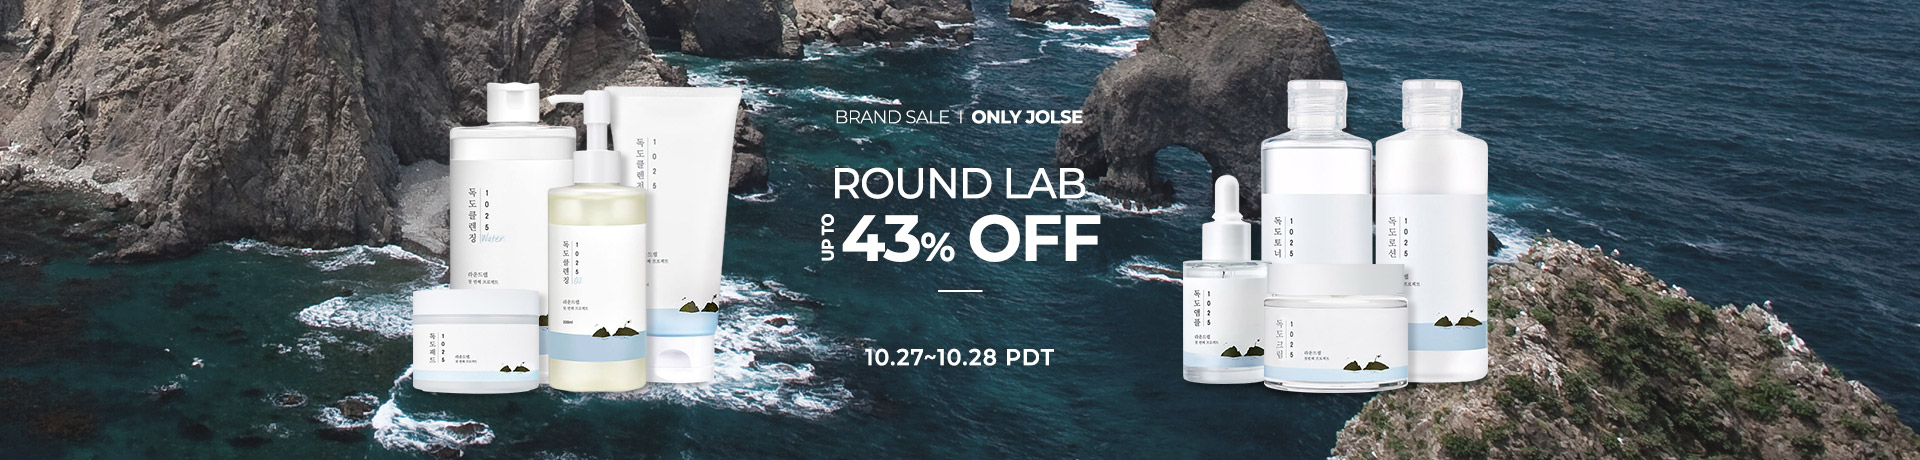 ROUND LAB Up to 43% OFF